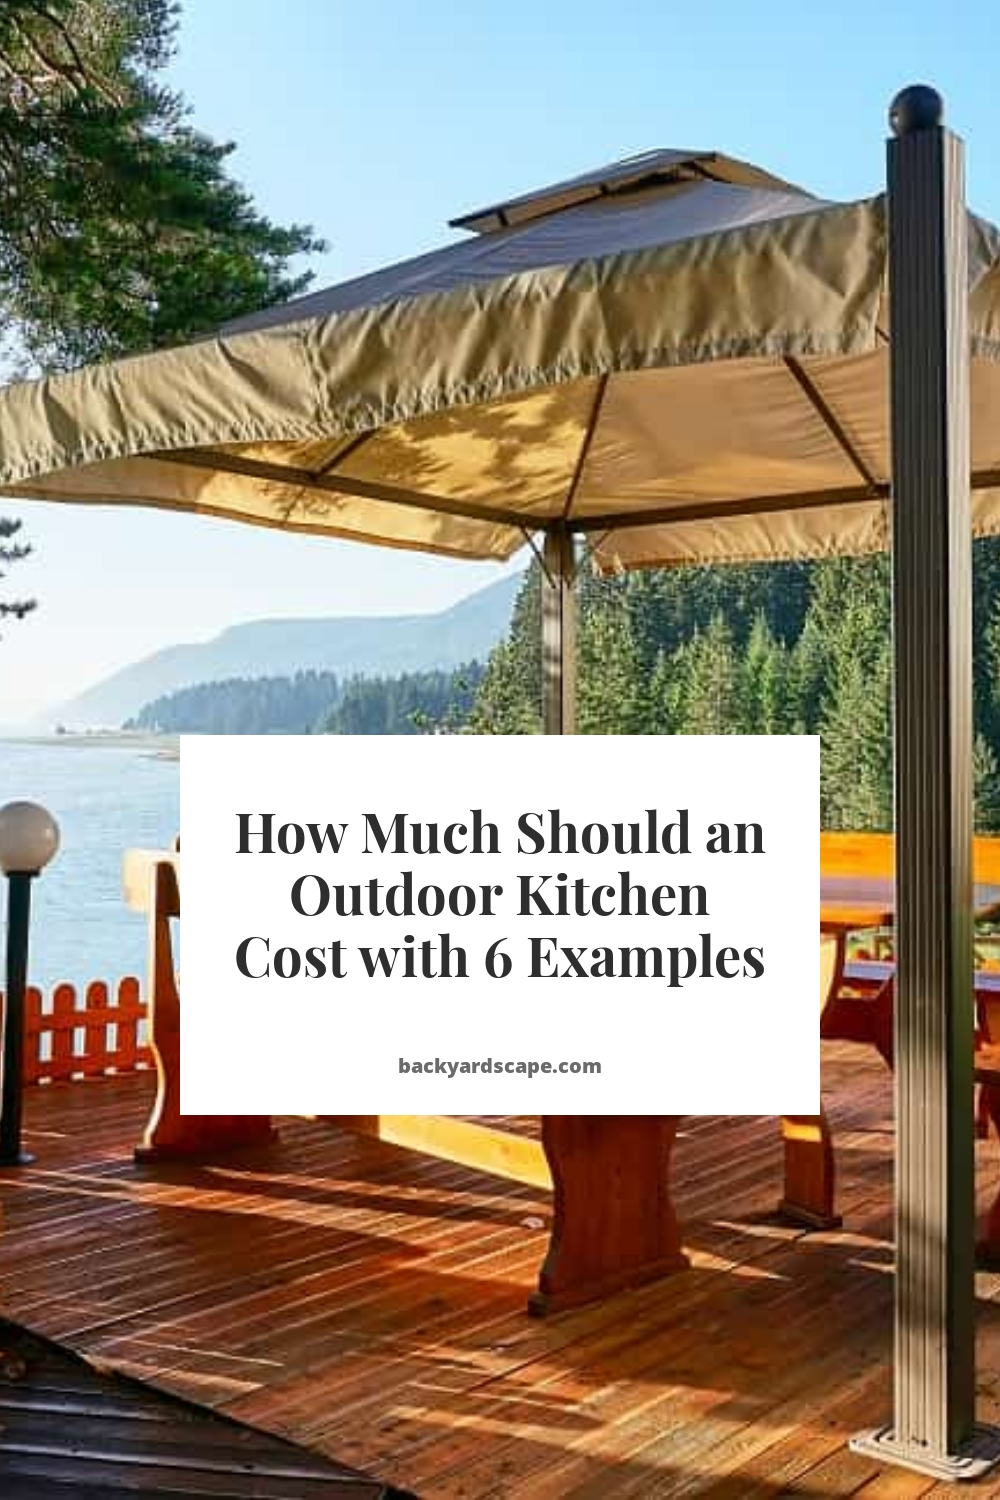 How Much Should an Outdoor Kitchen Cost with 6 Examples